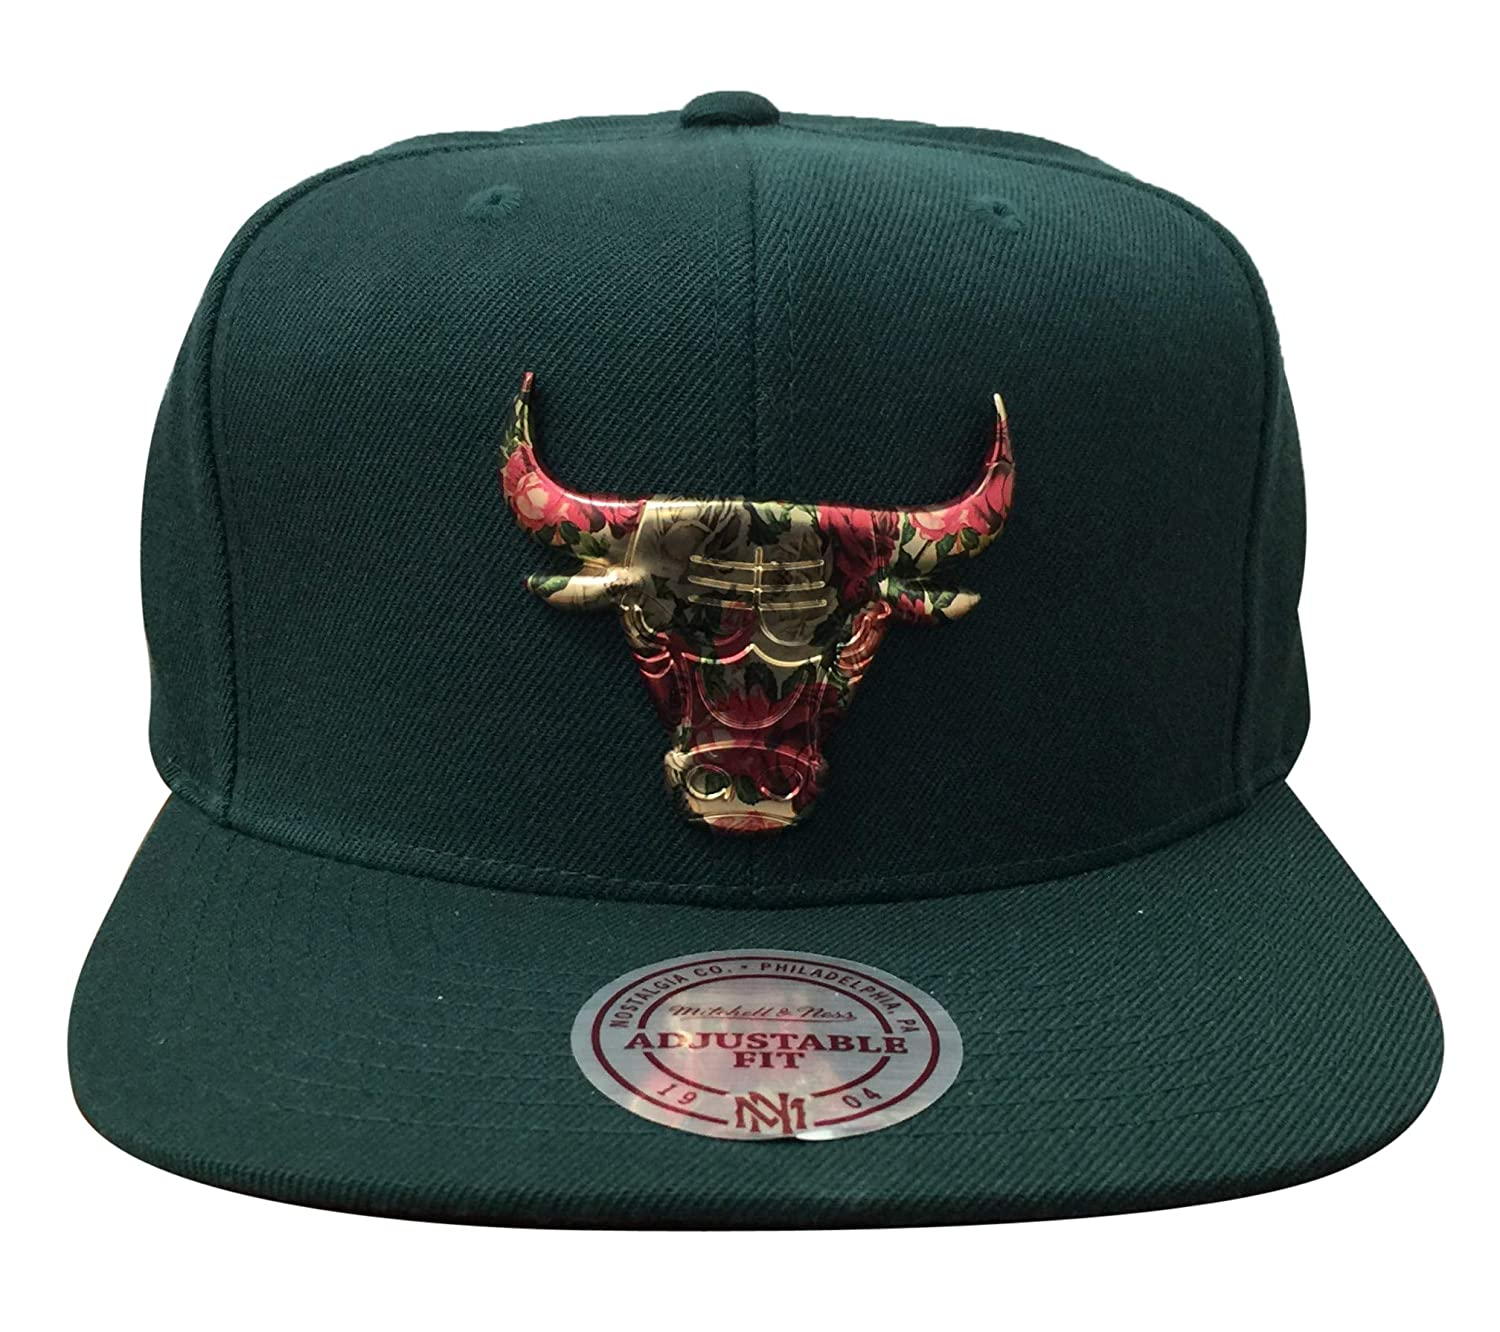 43228a57824 ... promo code for amazon mitchell ness chicago bulls floral broche snapback  osfa green clothing 34c66 70da5